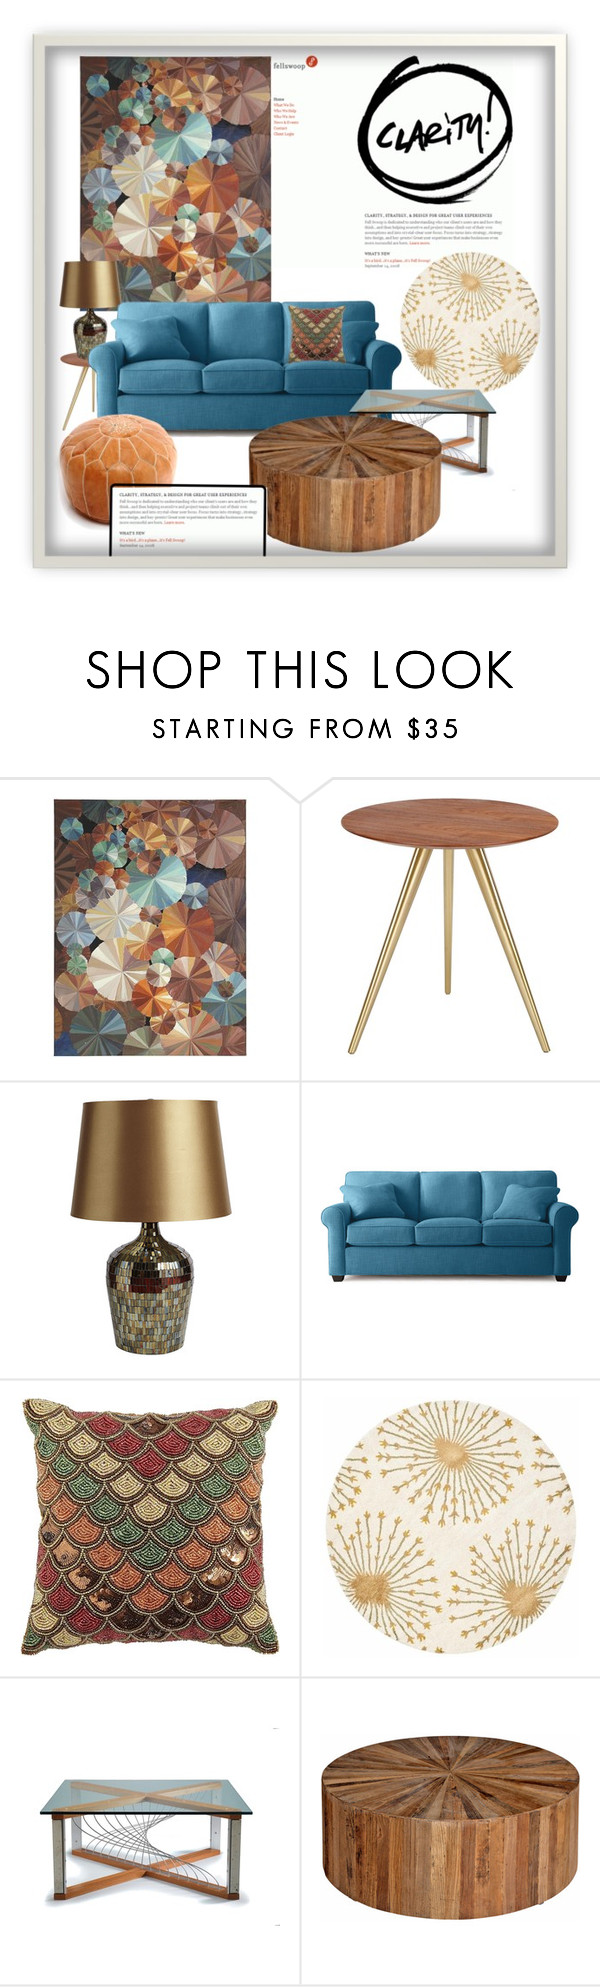 """""""Rounded"""" by jesking ❤ liked on Polyvore featuring interior, interiors, interior design, home, home decor, interior decorating, Pier 1 Imports and Safavieh"""